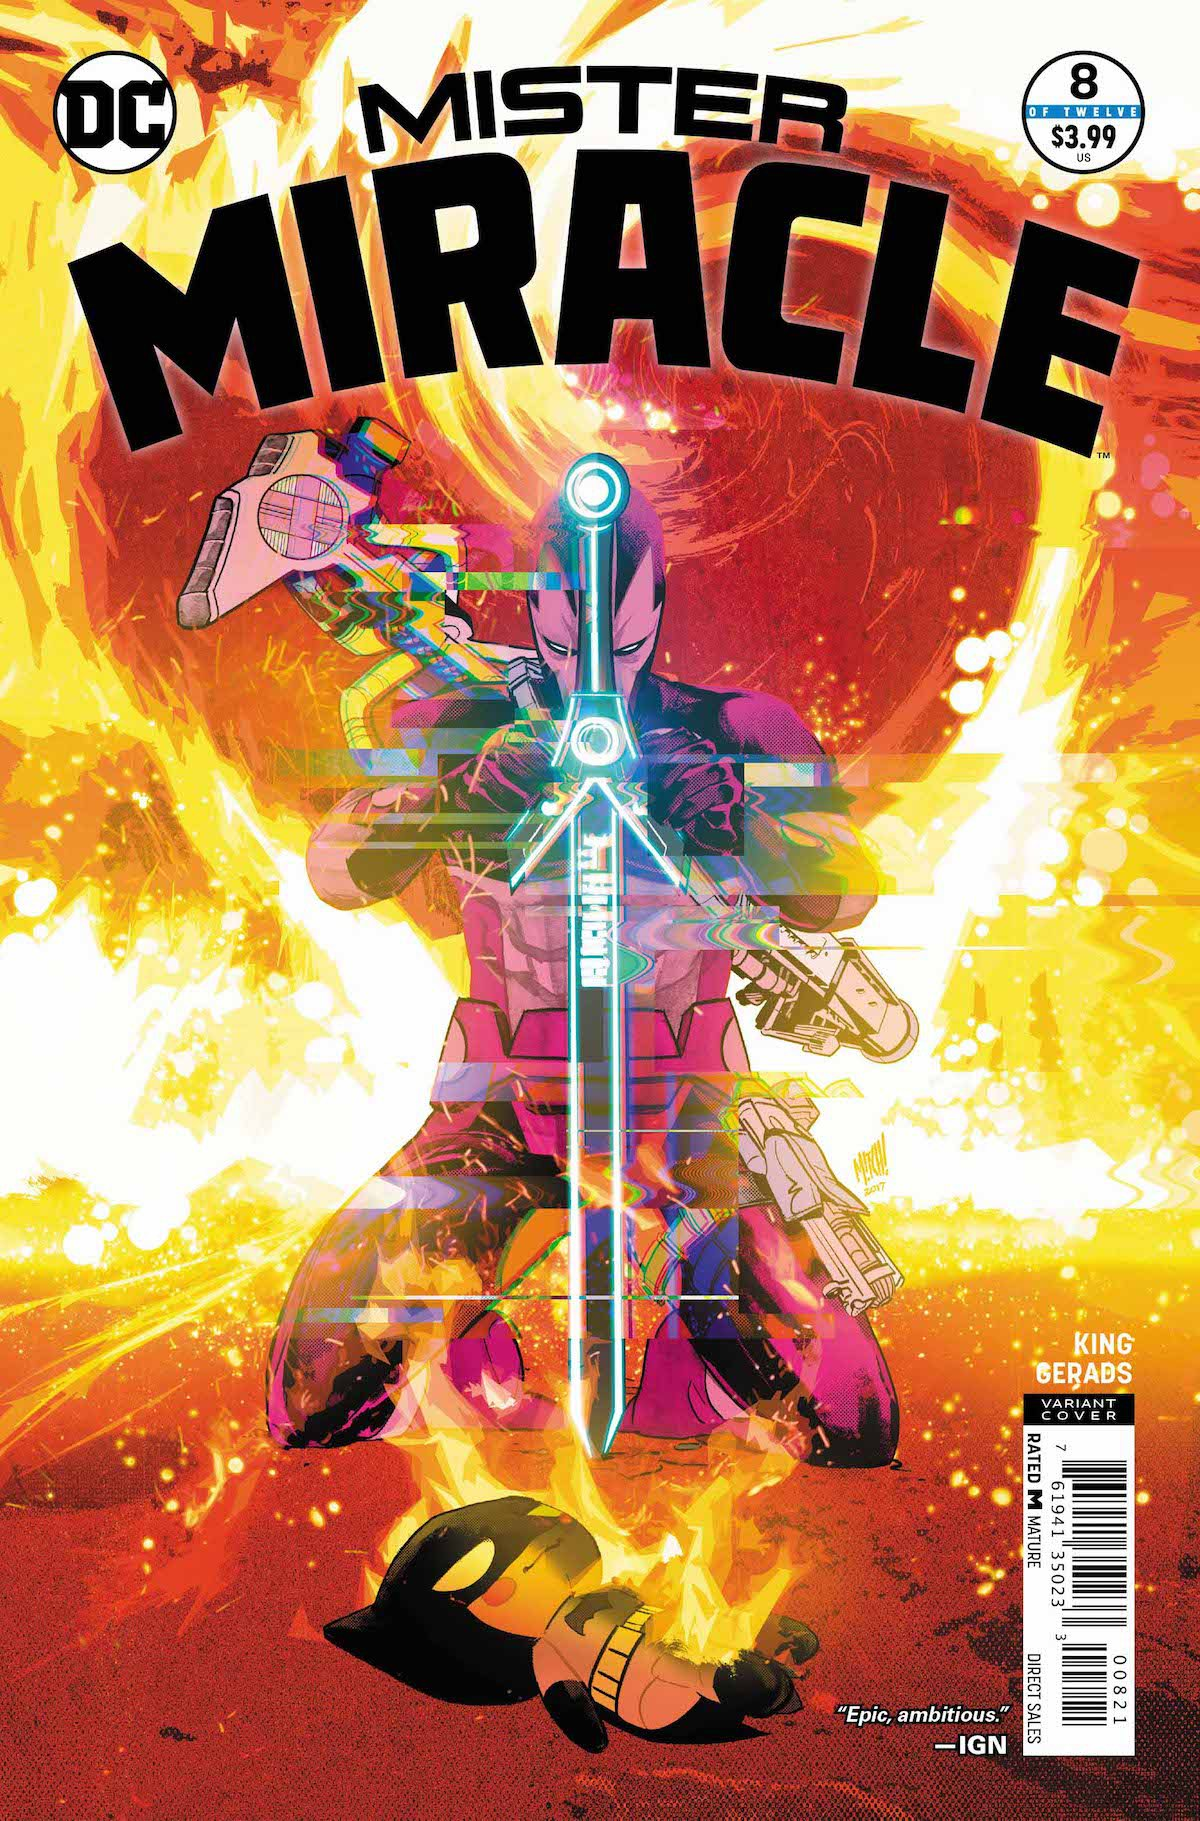 Mister Miracle #8 variant cover